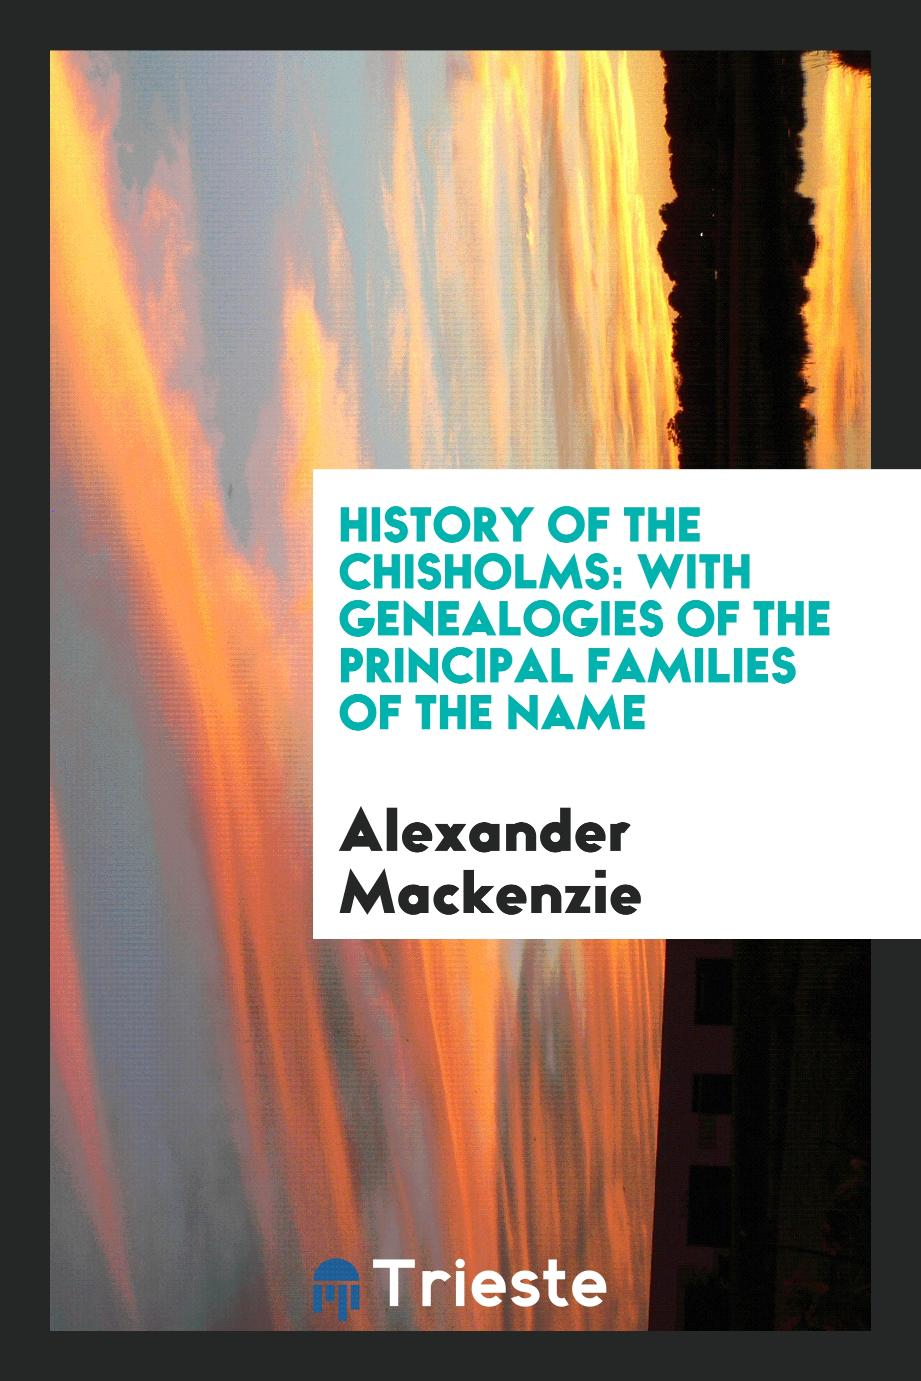 History of the Chisholms: with genealogies of the principal families of the name